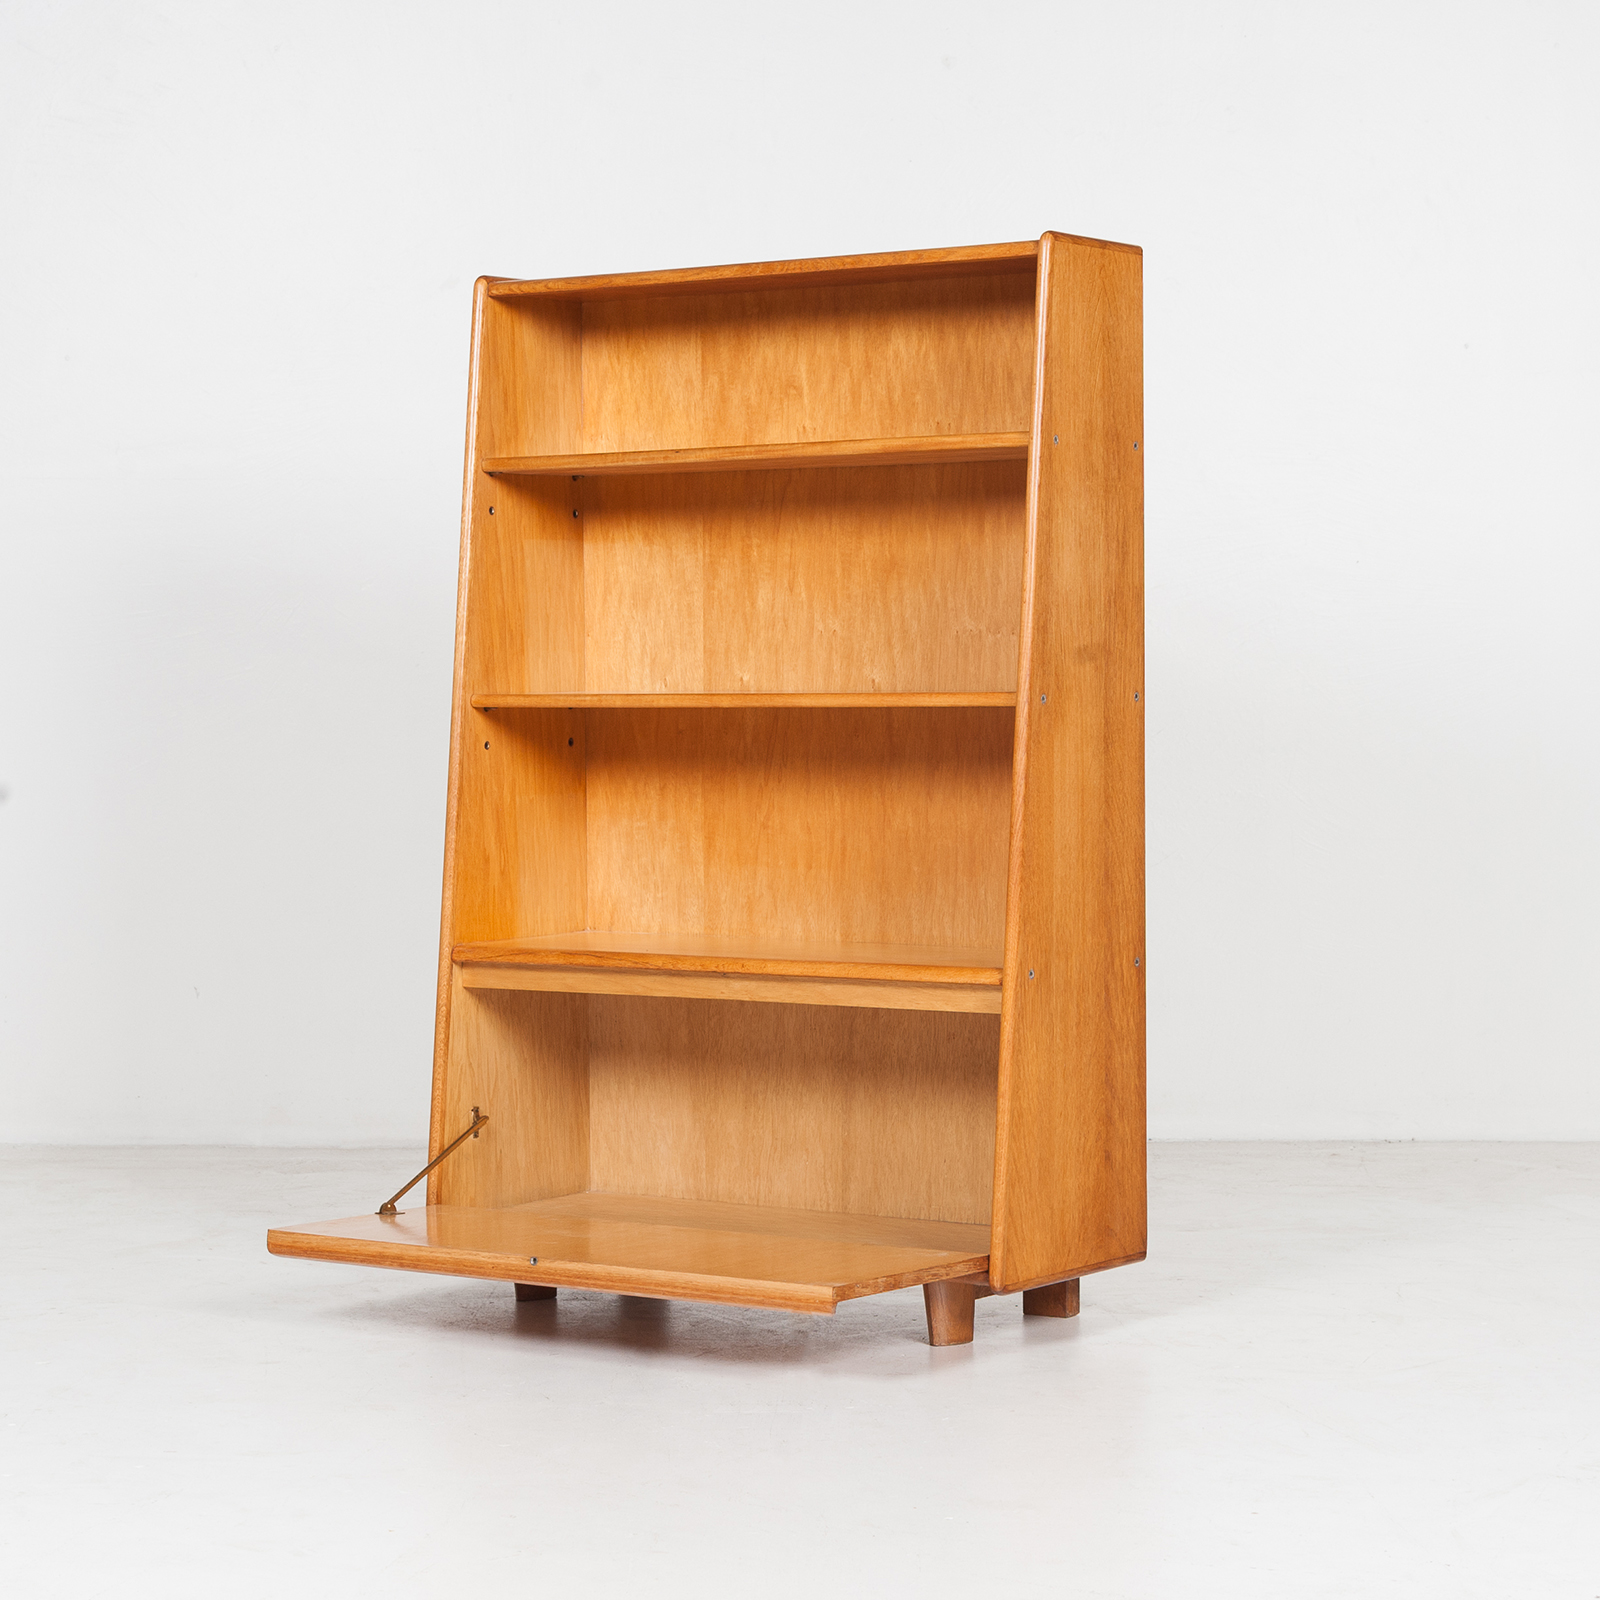 Model Be 03 Oak Series Bookcase By Cees Braakman For Pastoe, 1950s, The Netherlands 36